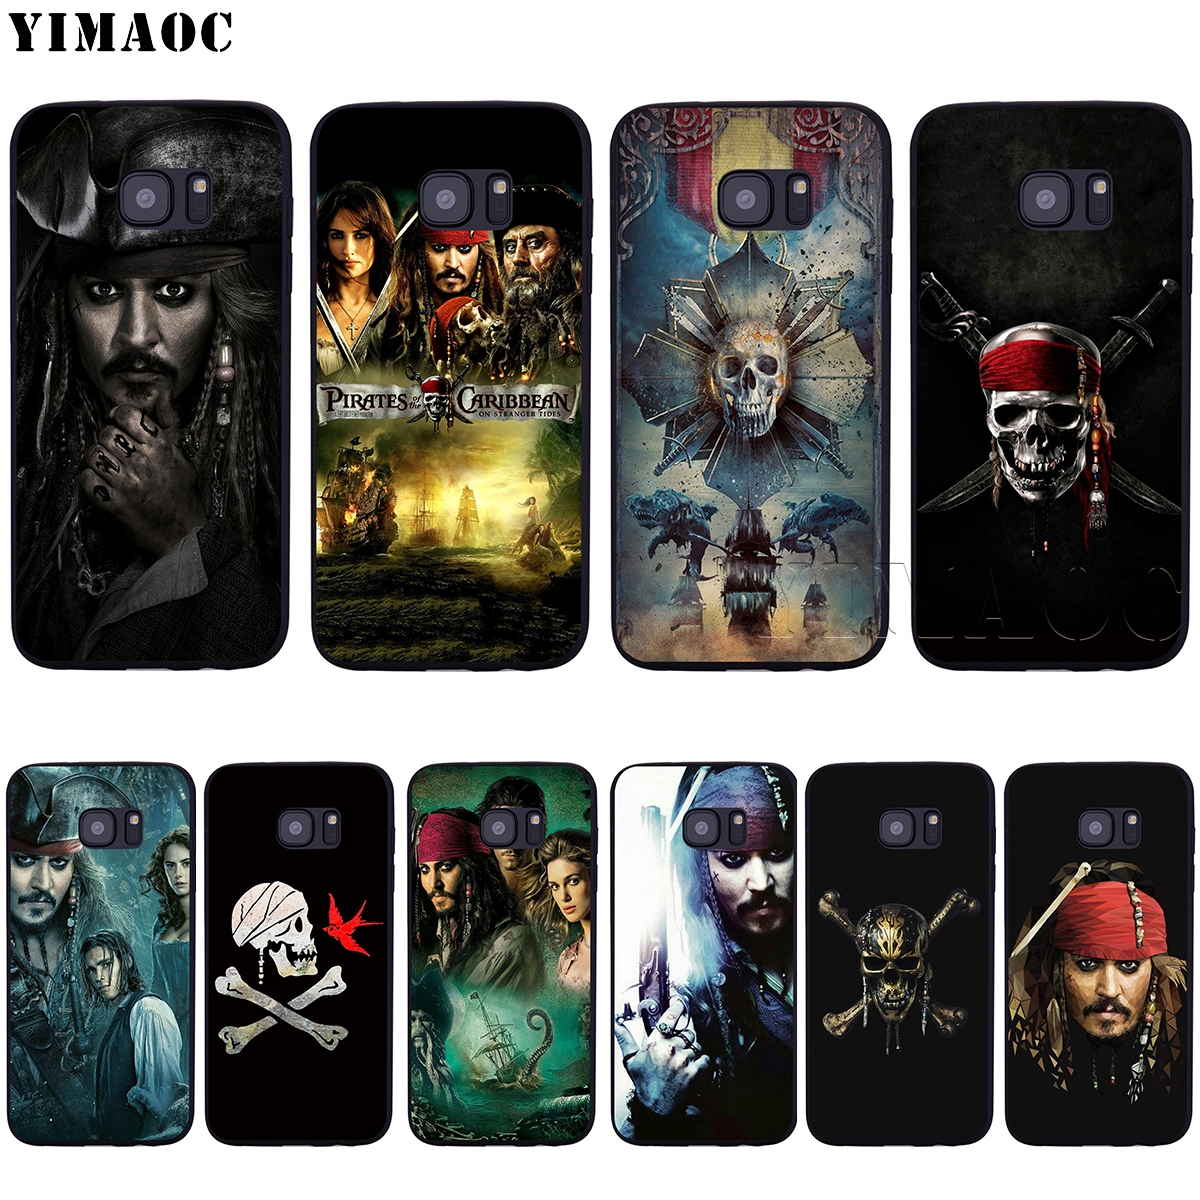 YIMAOC Pirates Of The Caribbean Soft Silicone Case for Samsung Galaxy S6 S7 Edge S8 S9 Plus A3 A5 2016 2017